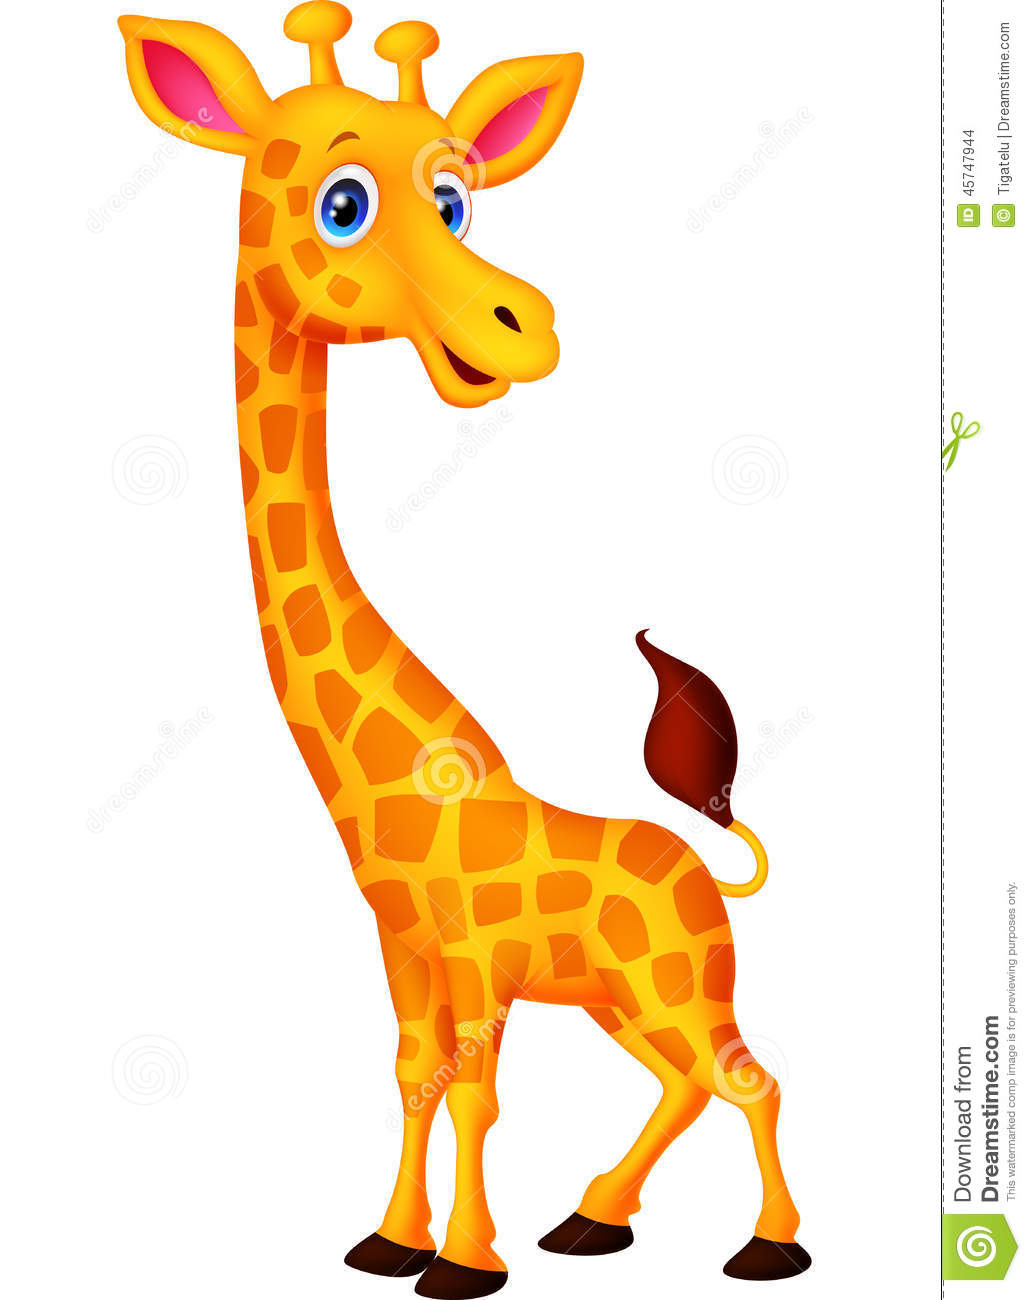 Happy Giraffe Cartoon Stock Vector - Image: 45747944